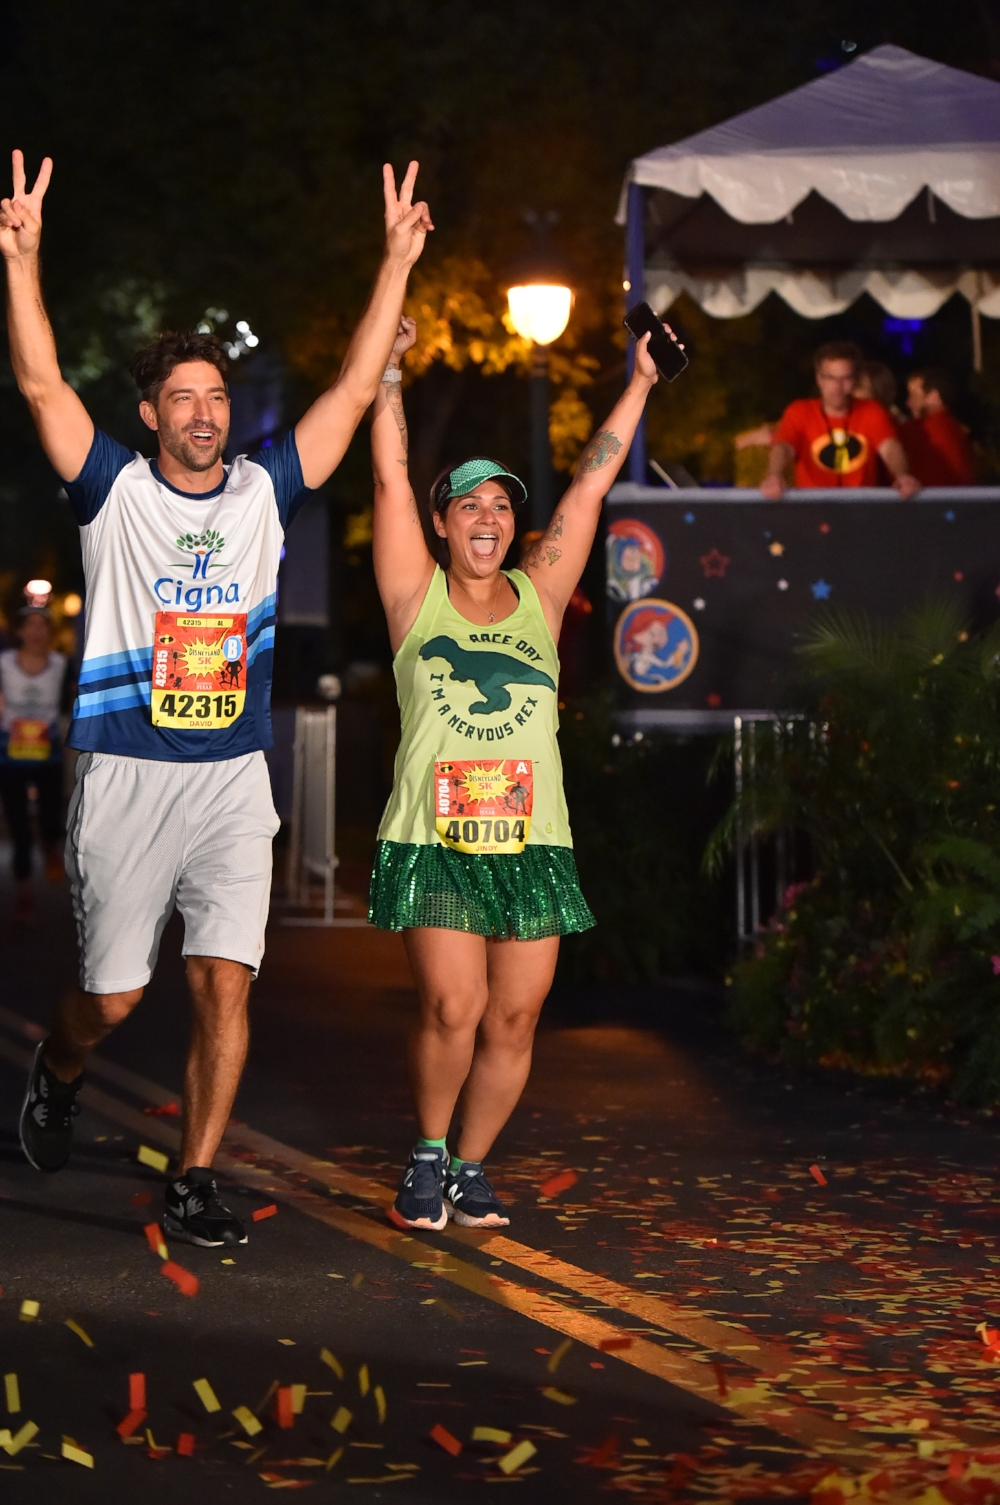 finish-line-cigna-rundisney.jpg